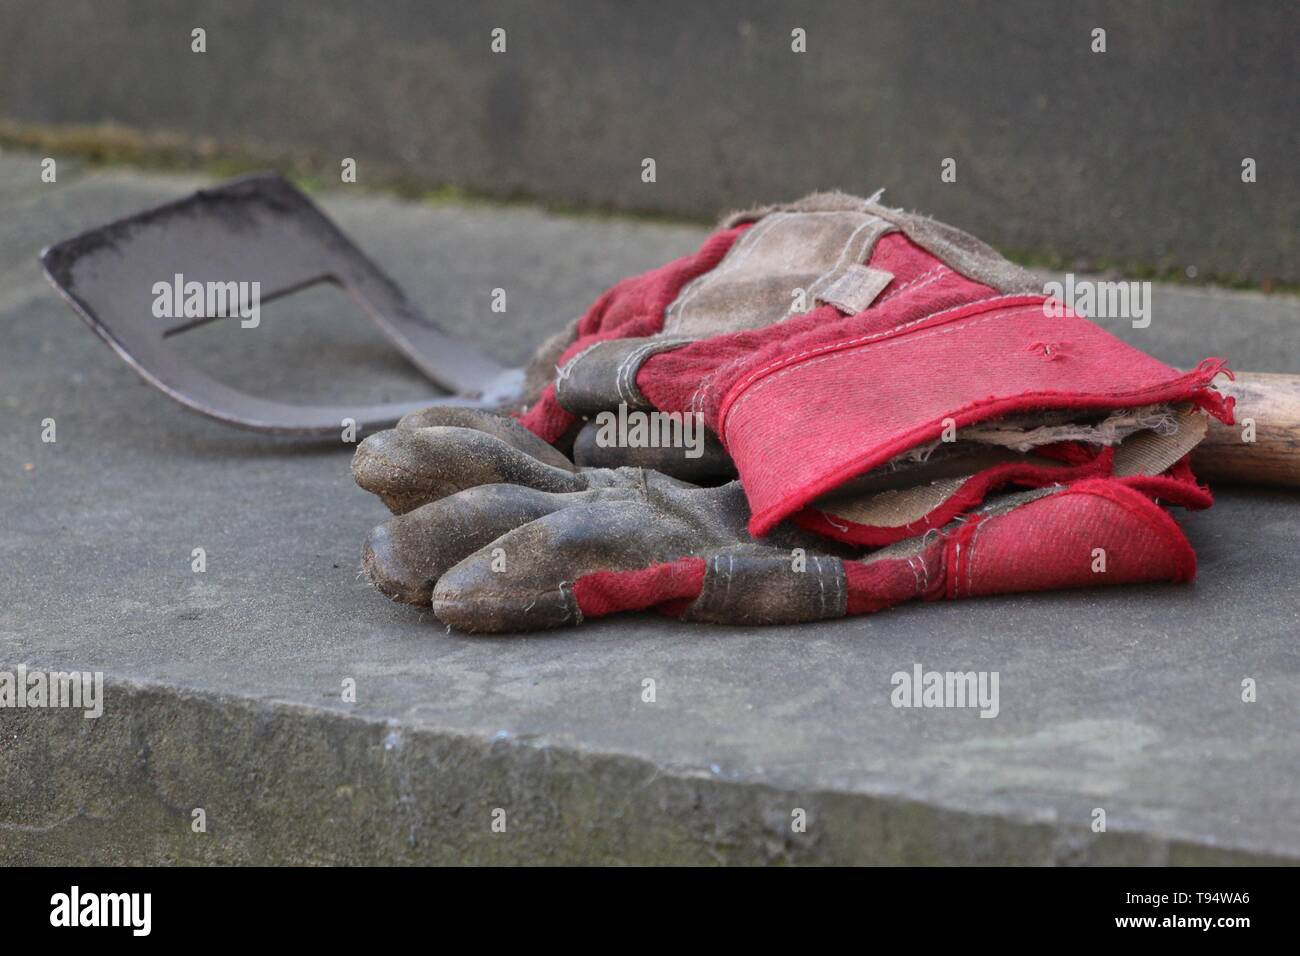 Gardening Gloves and Tool - Stock Image